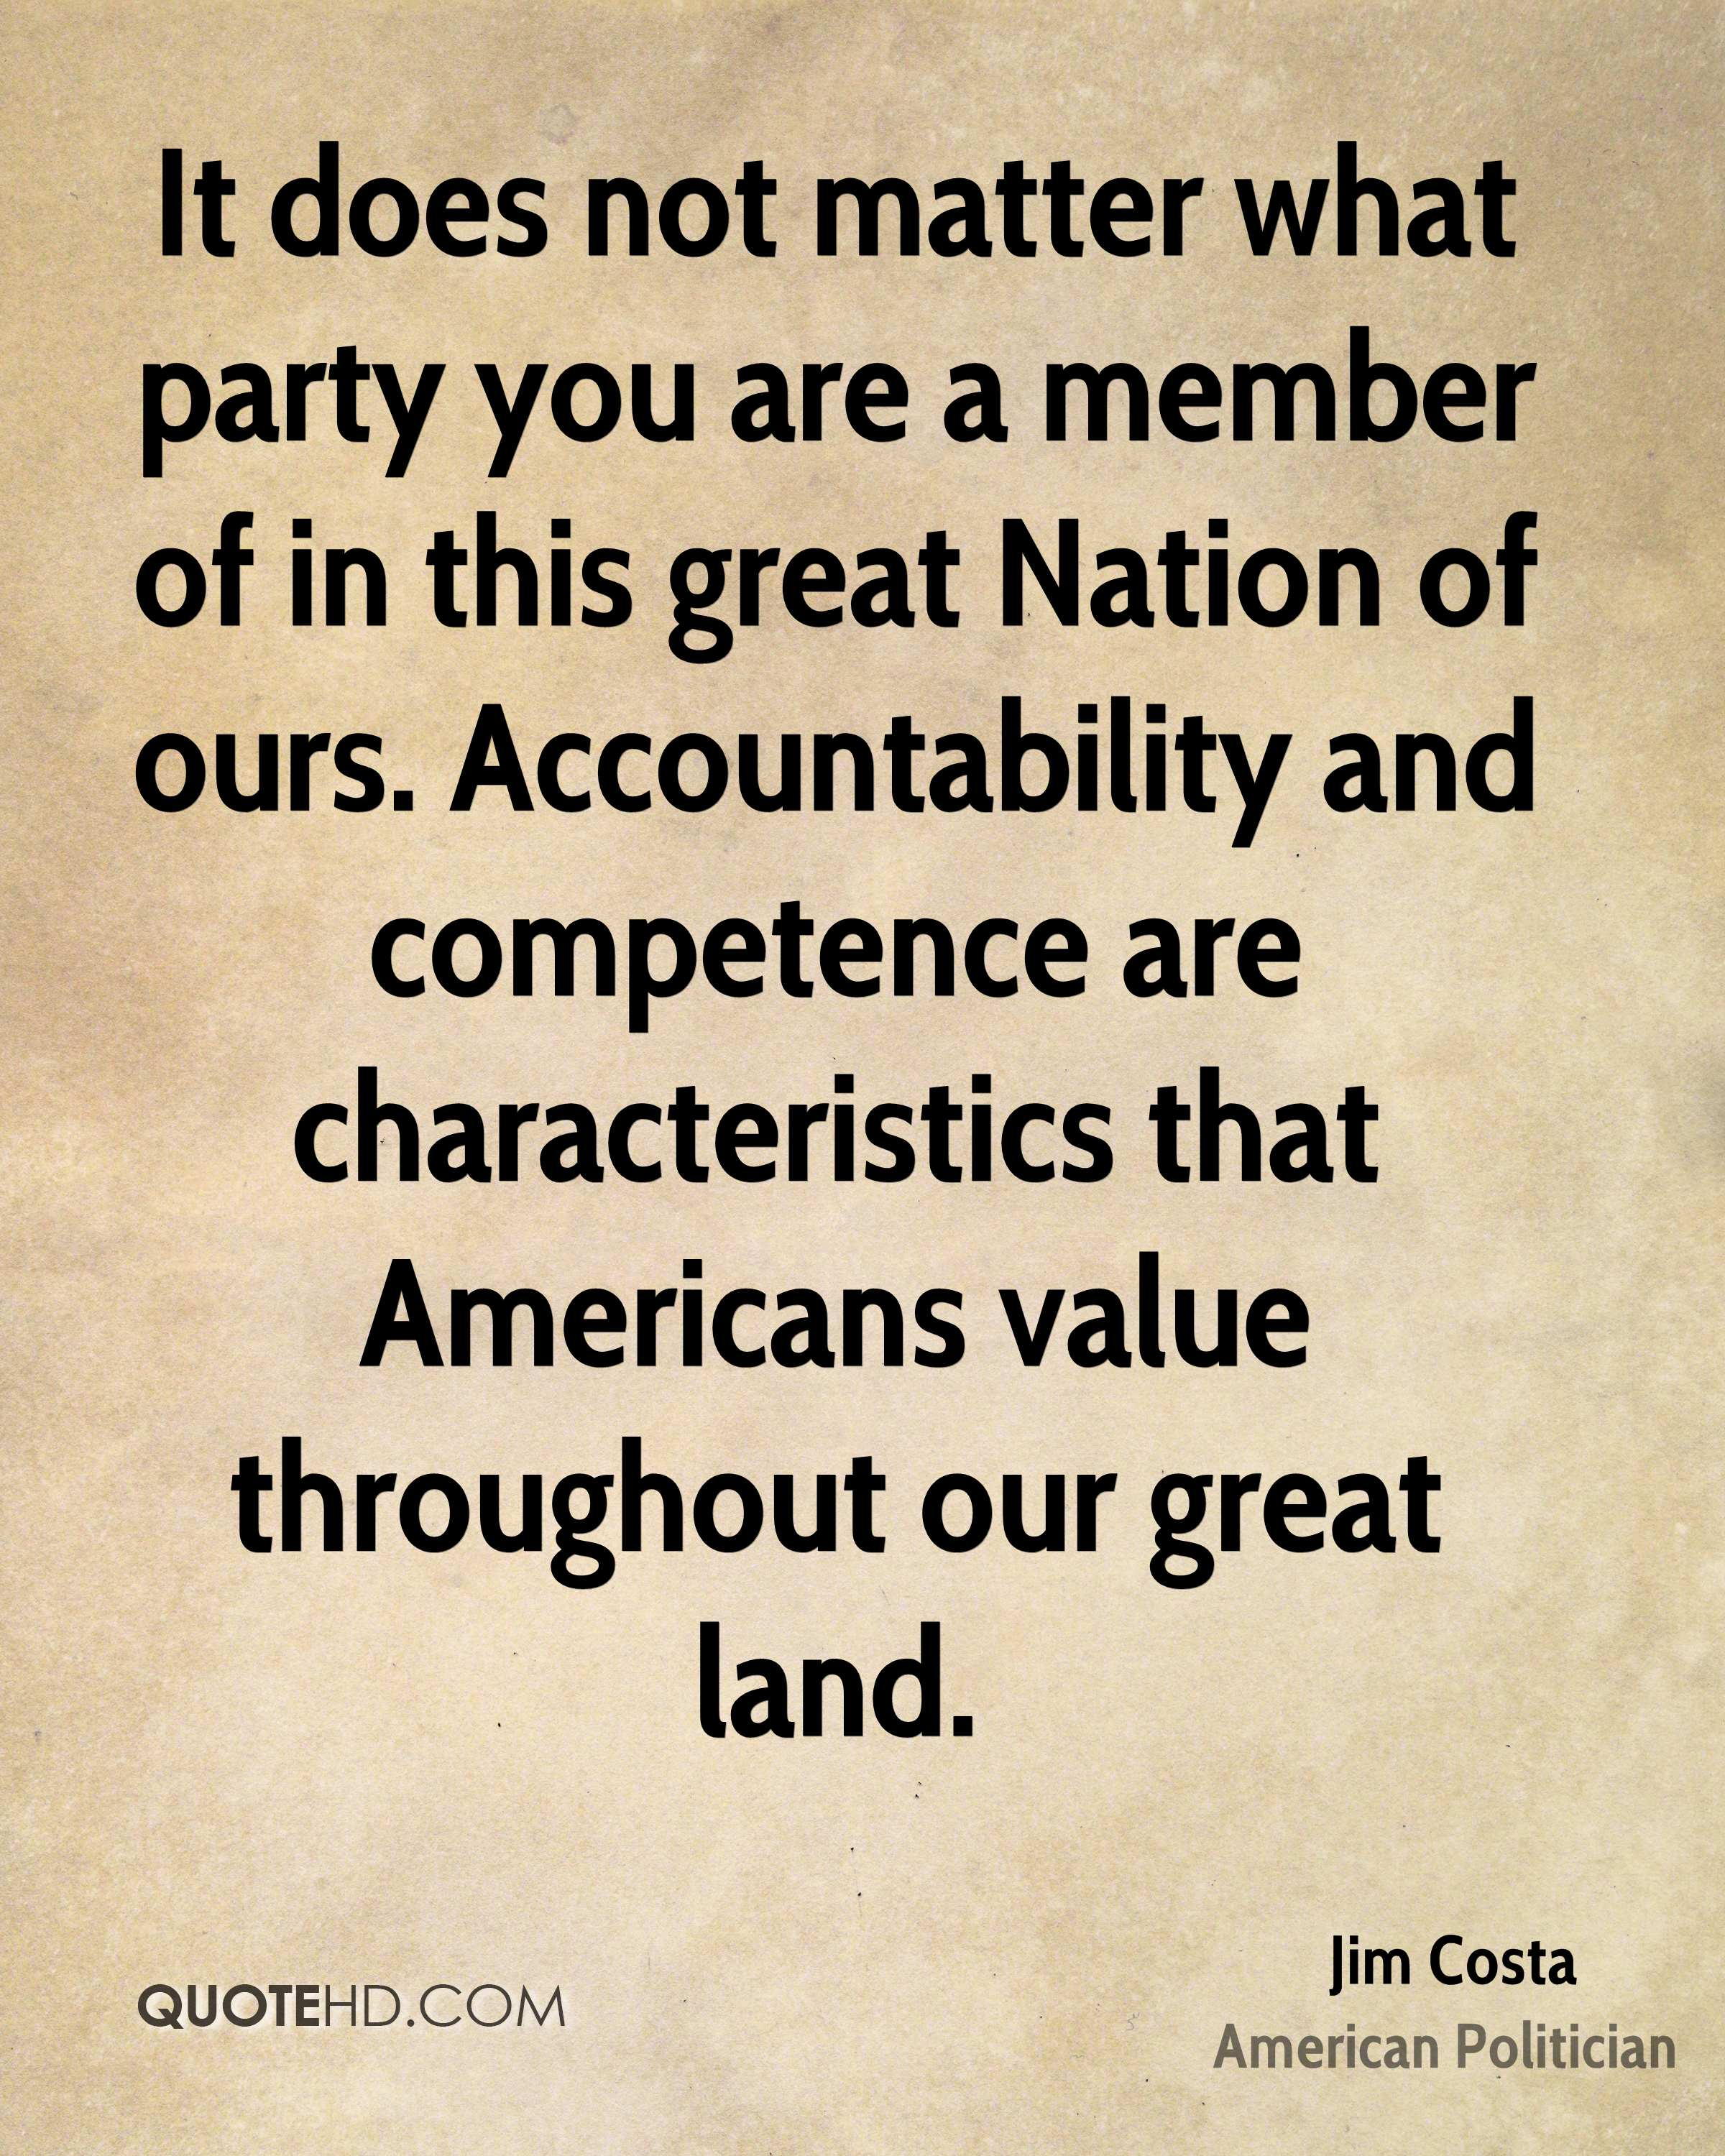 It does not matter what party you are a member of in this great Nation of ours. Accountability and competence are characteristics that Americans value throughout our great land.